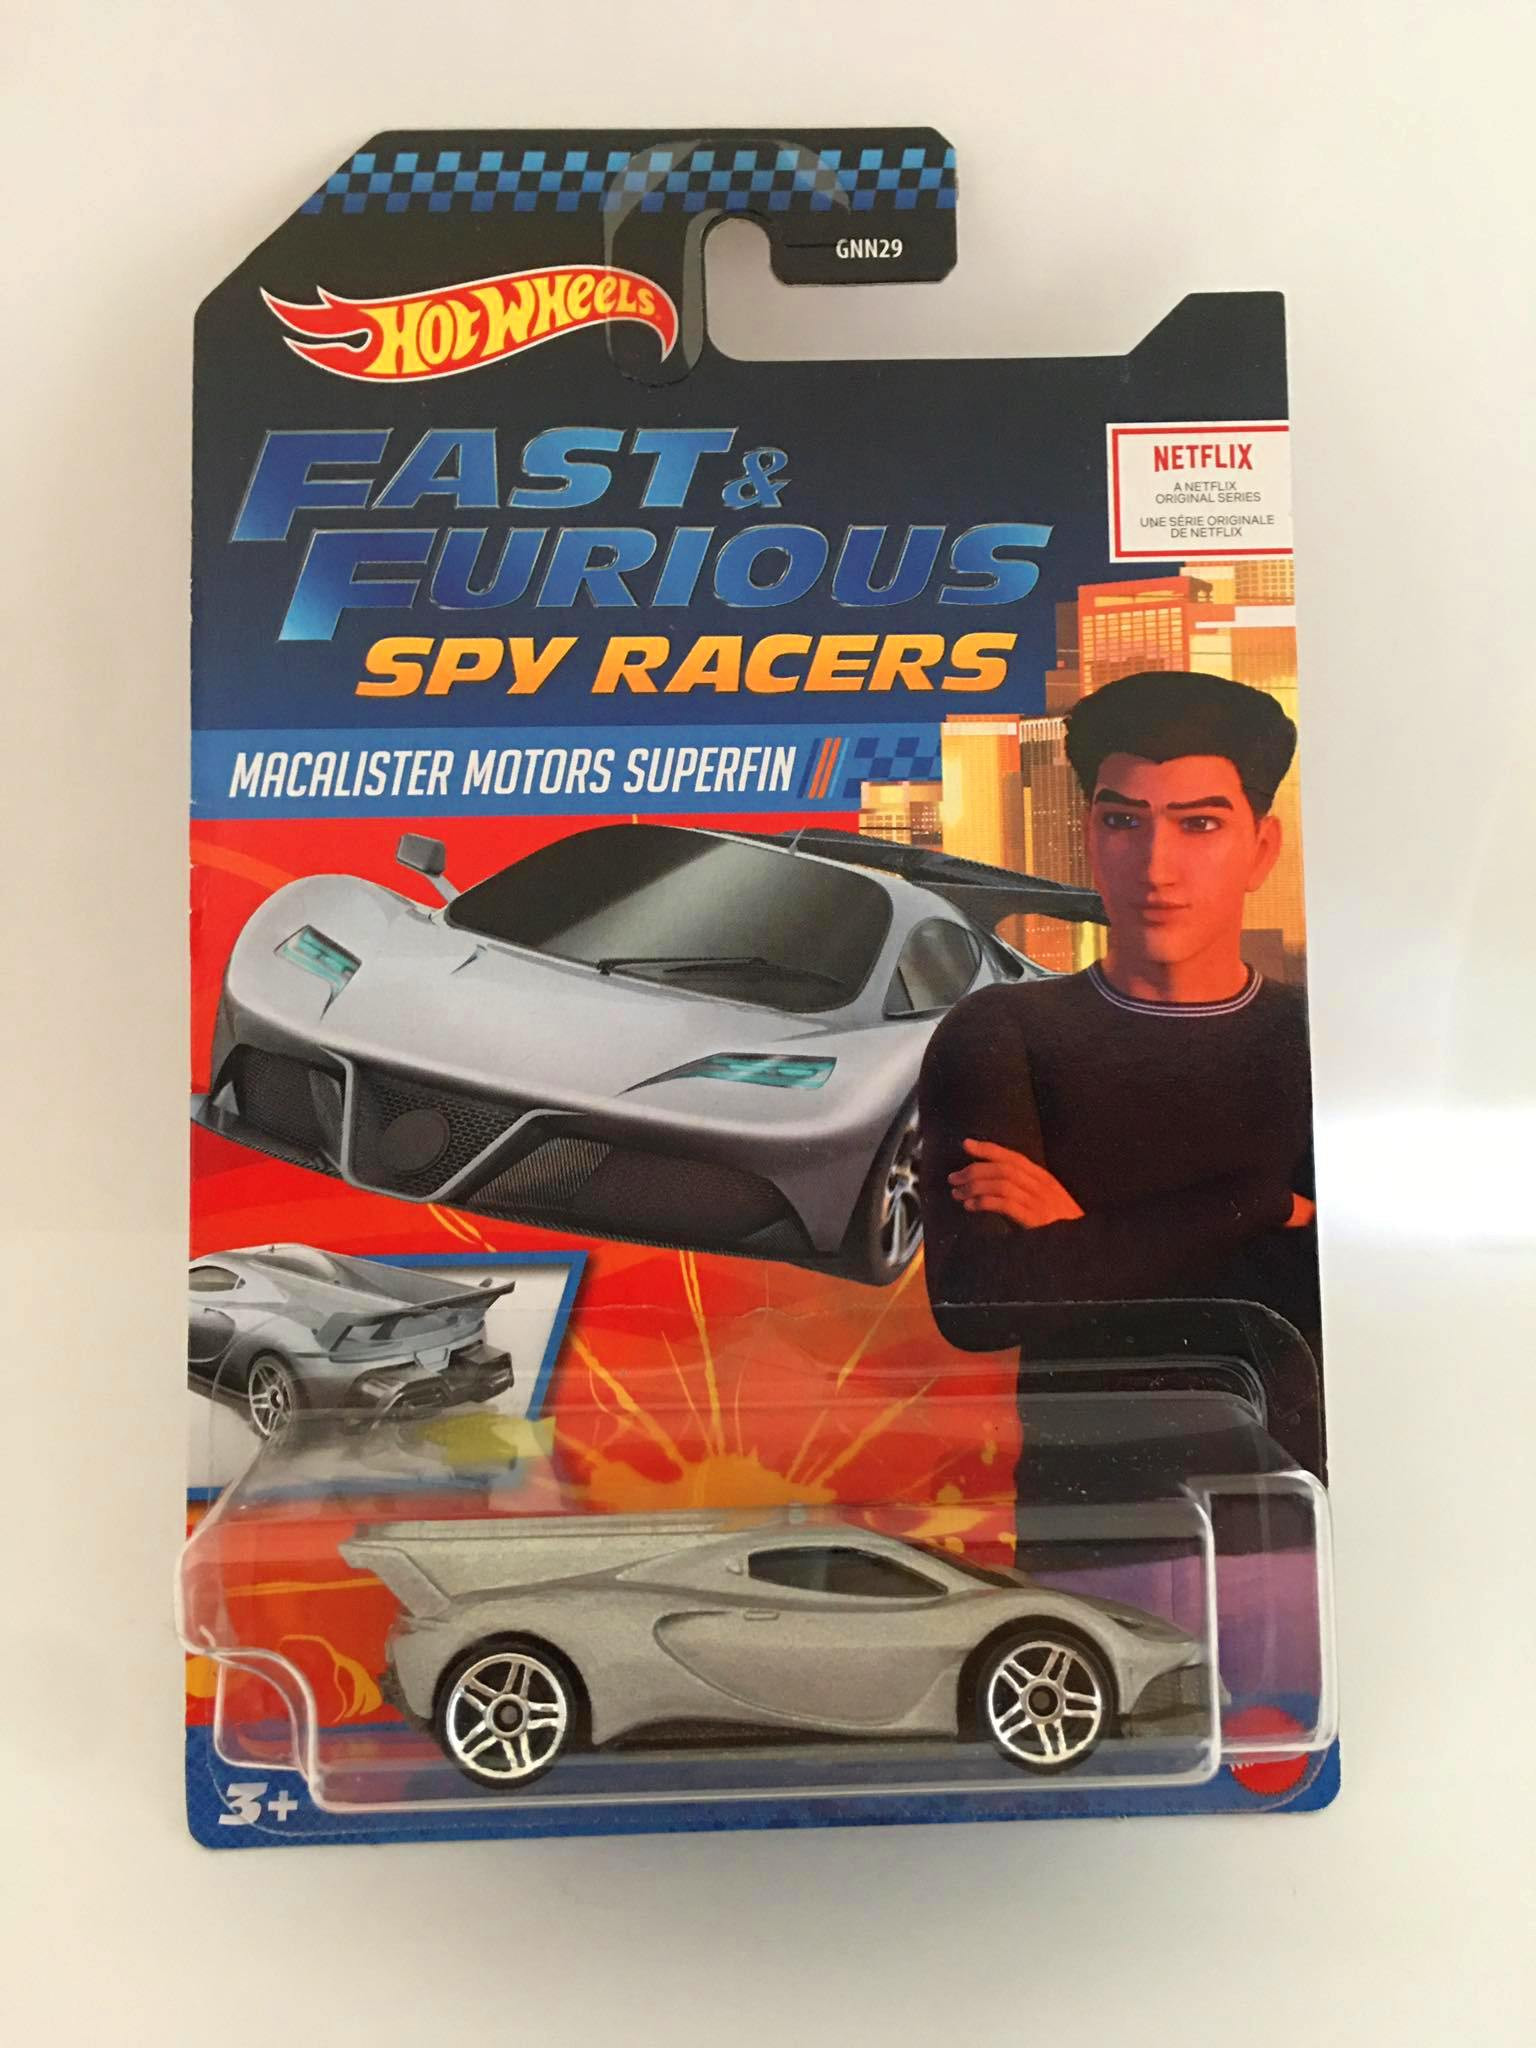 Hot Wheels - Macalister Motors Superfin Cinza - Fast & Furious Spy Racers